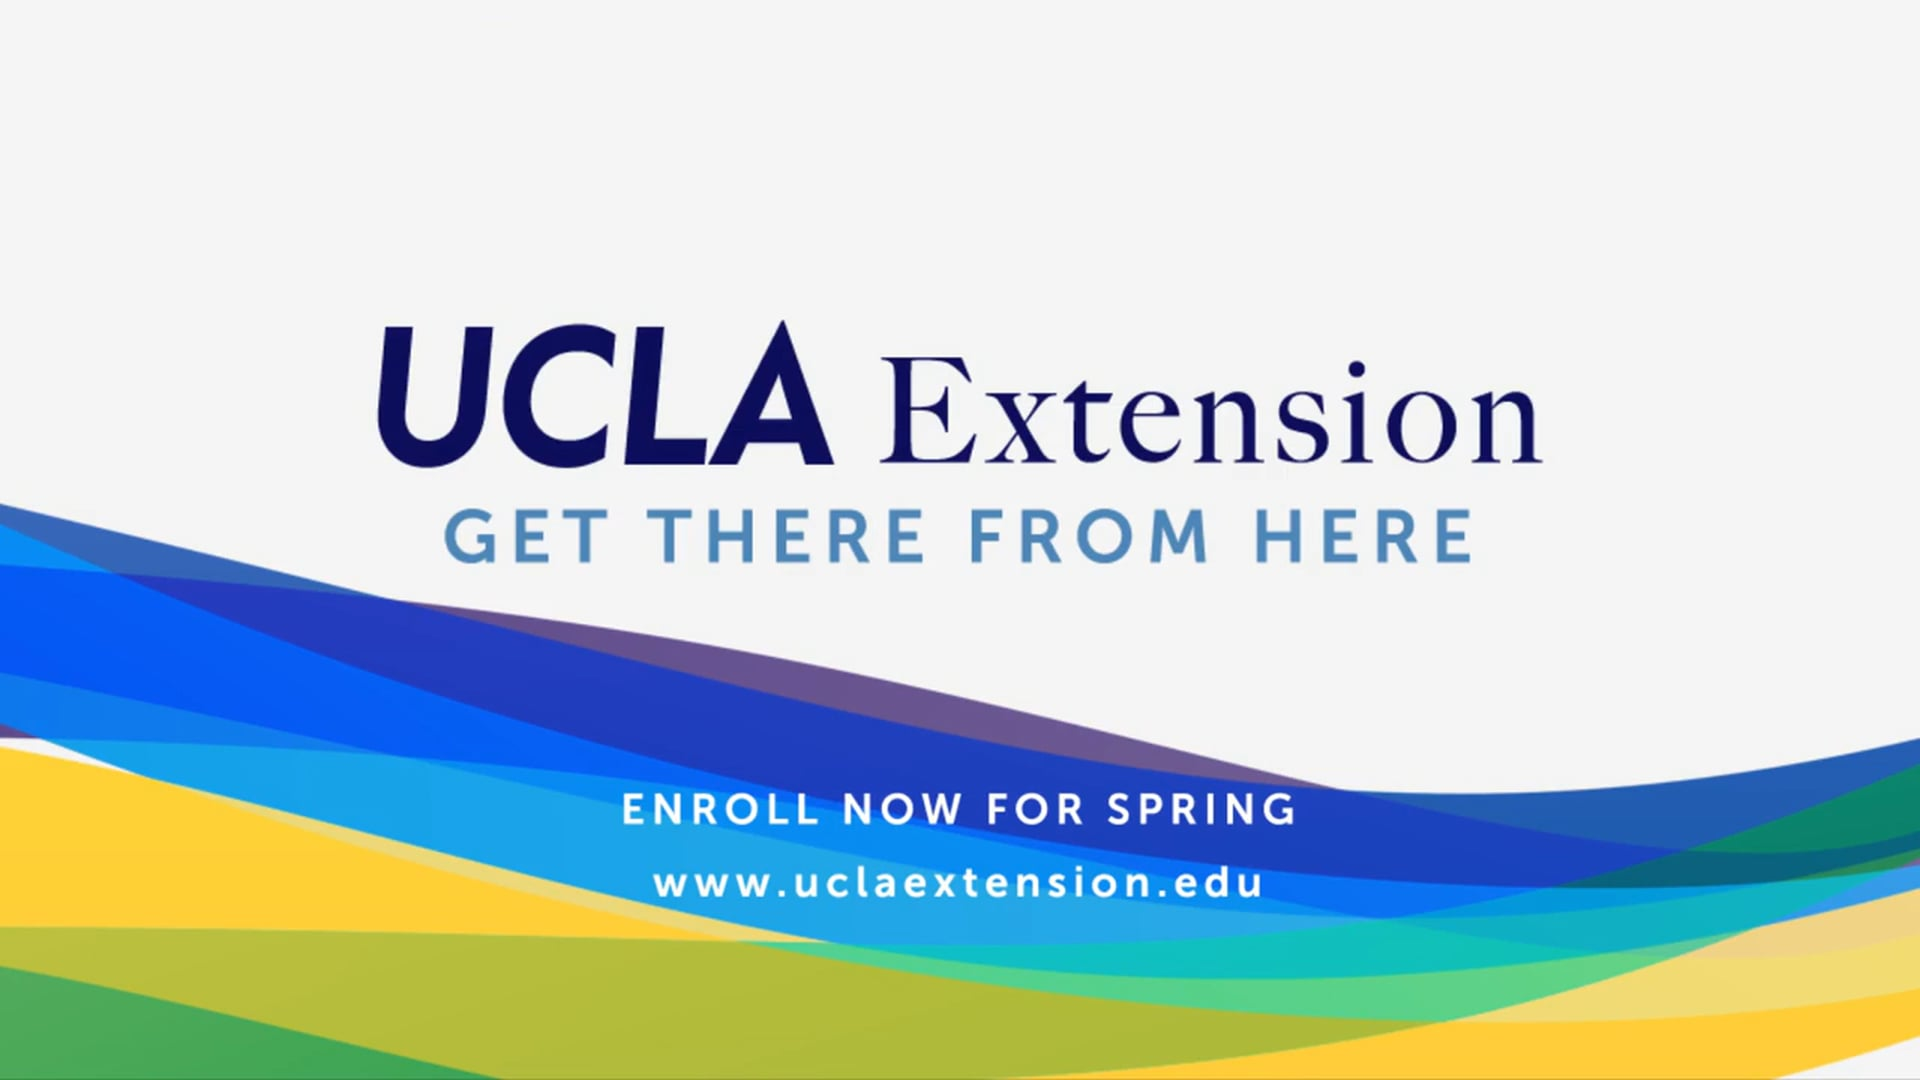 Ucla extension los angeles united states shortcoursesportal cookies help us analyze your behavior in order to improve your experience and third parties use them to create personalized advertising xflitez Image collections